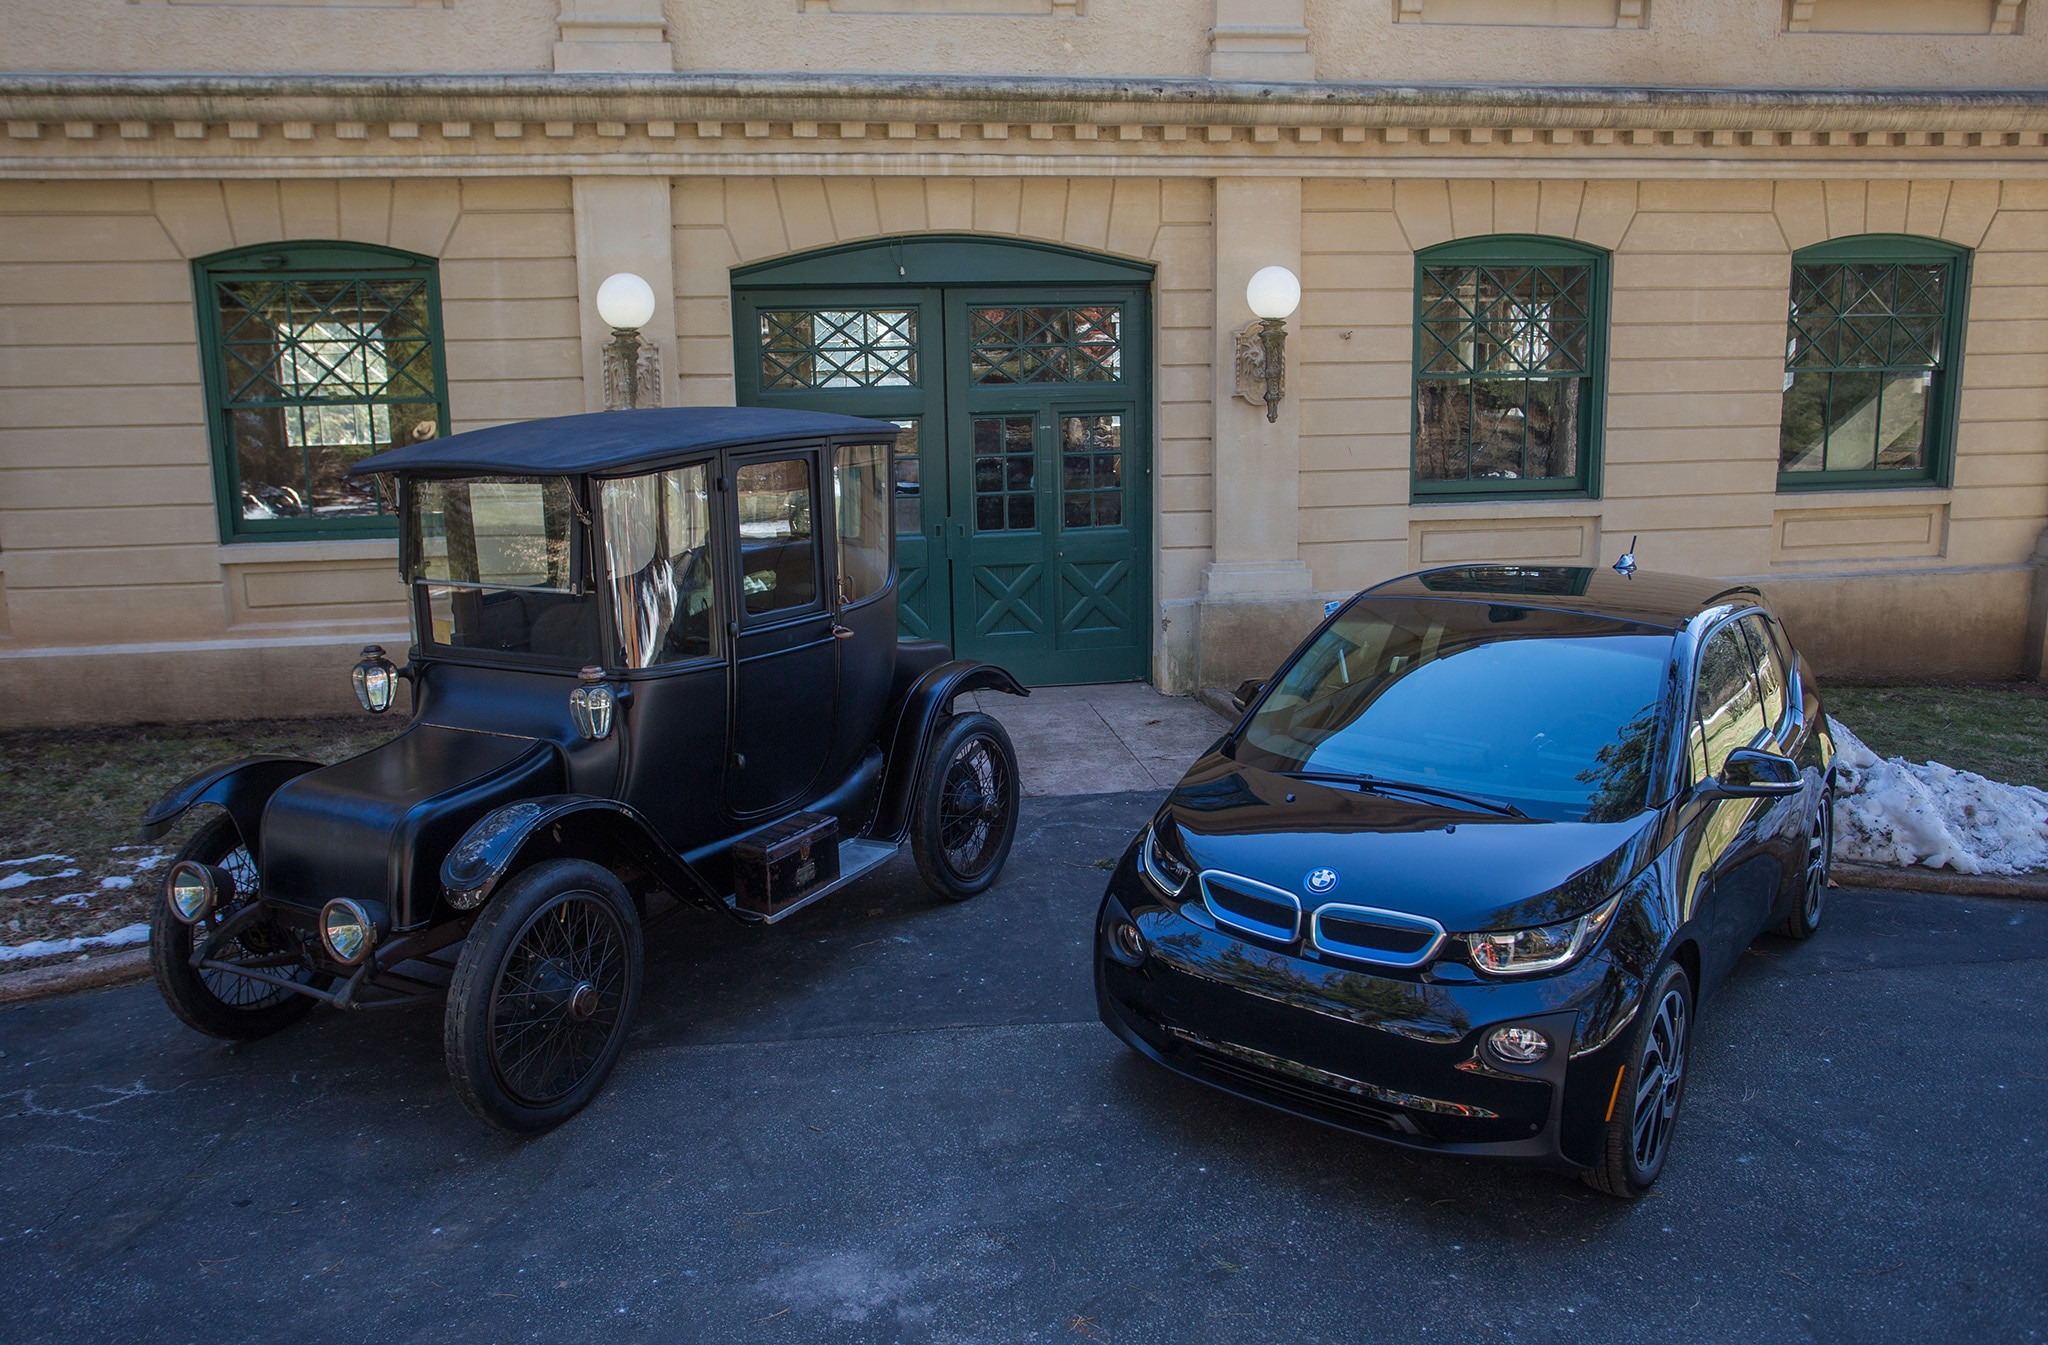 BMW Partners with National Park Service to Provide Up to 100 EV